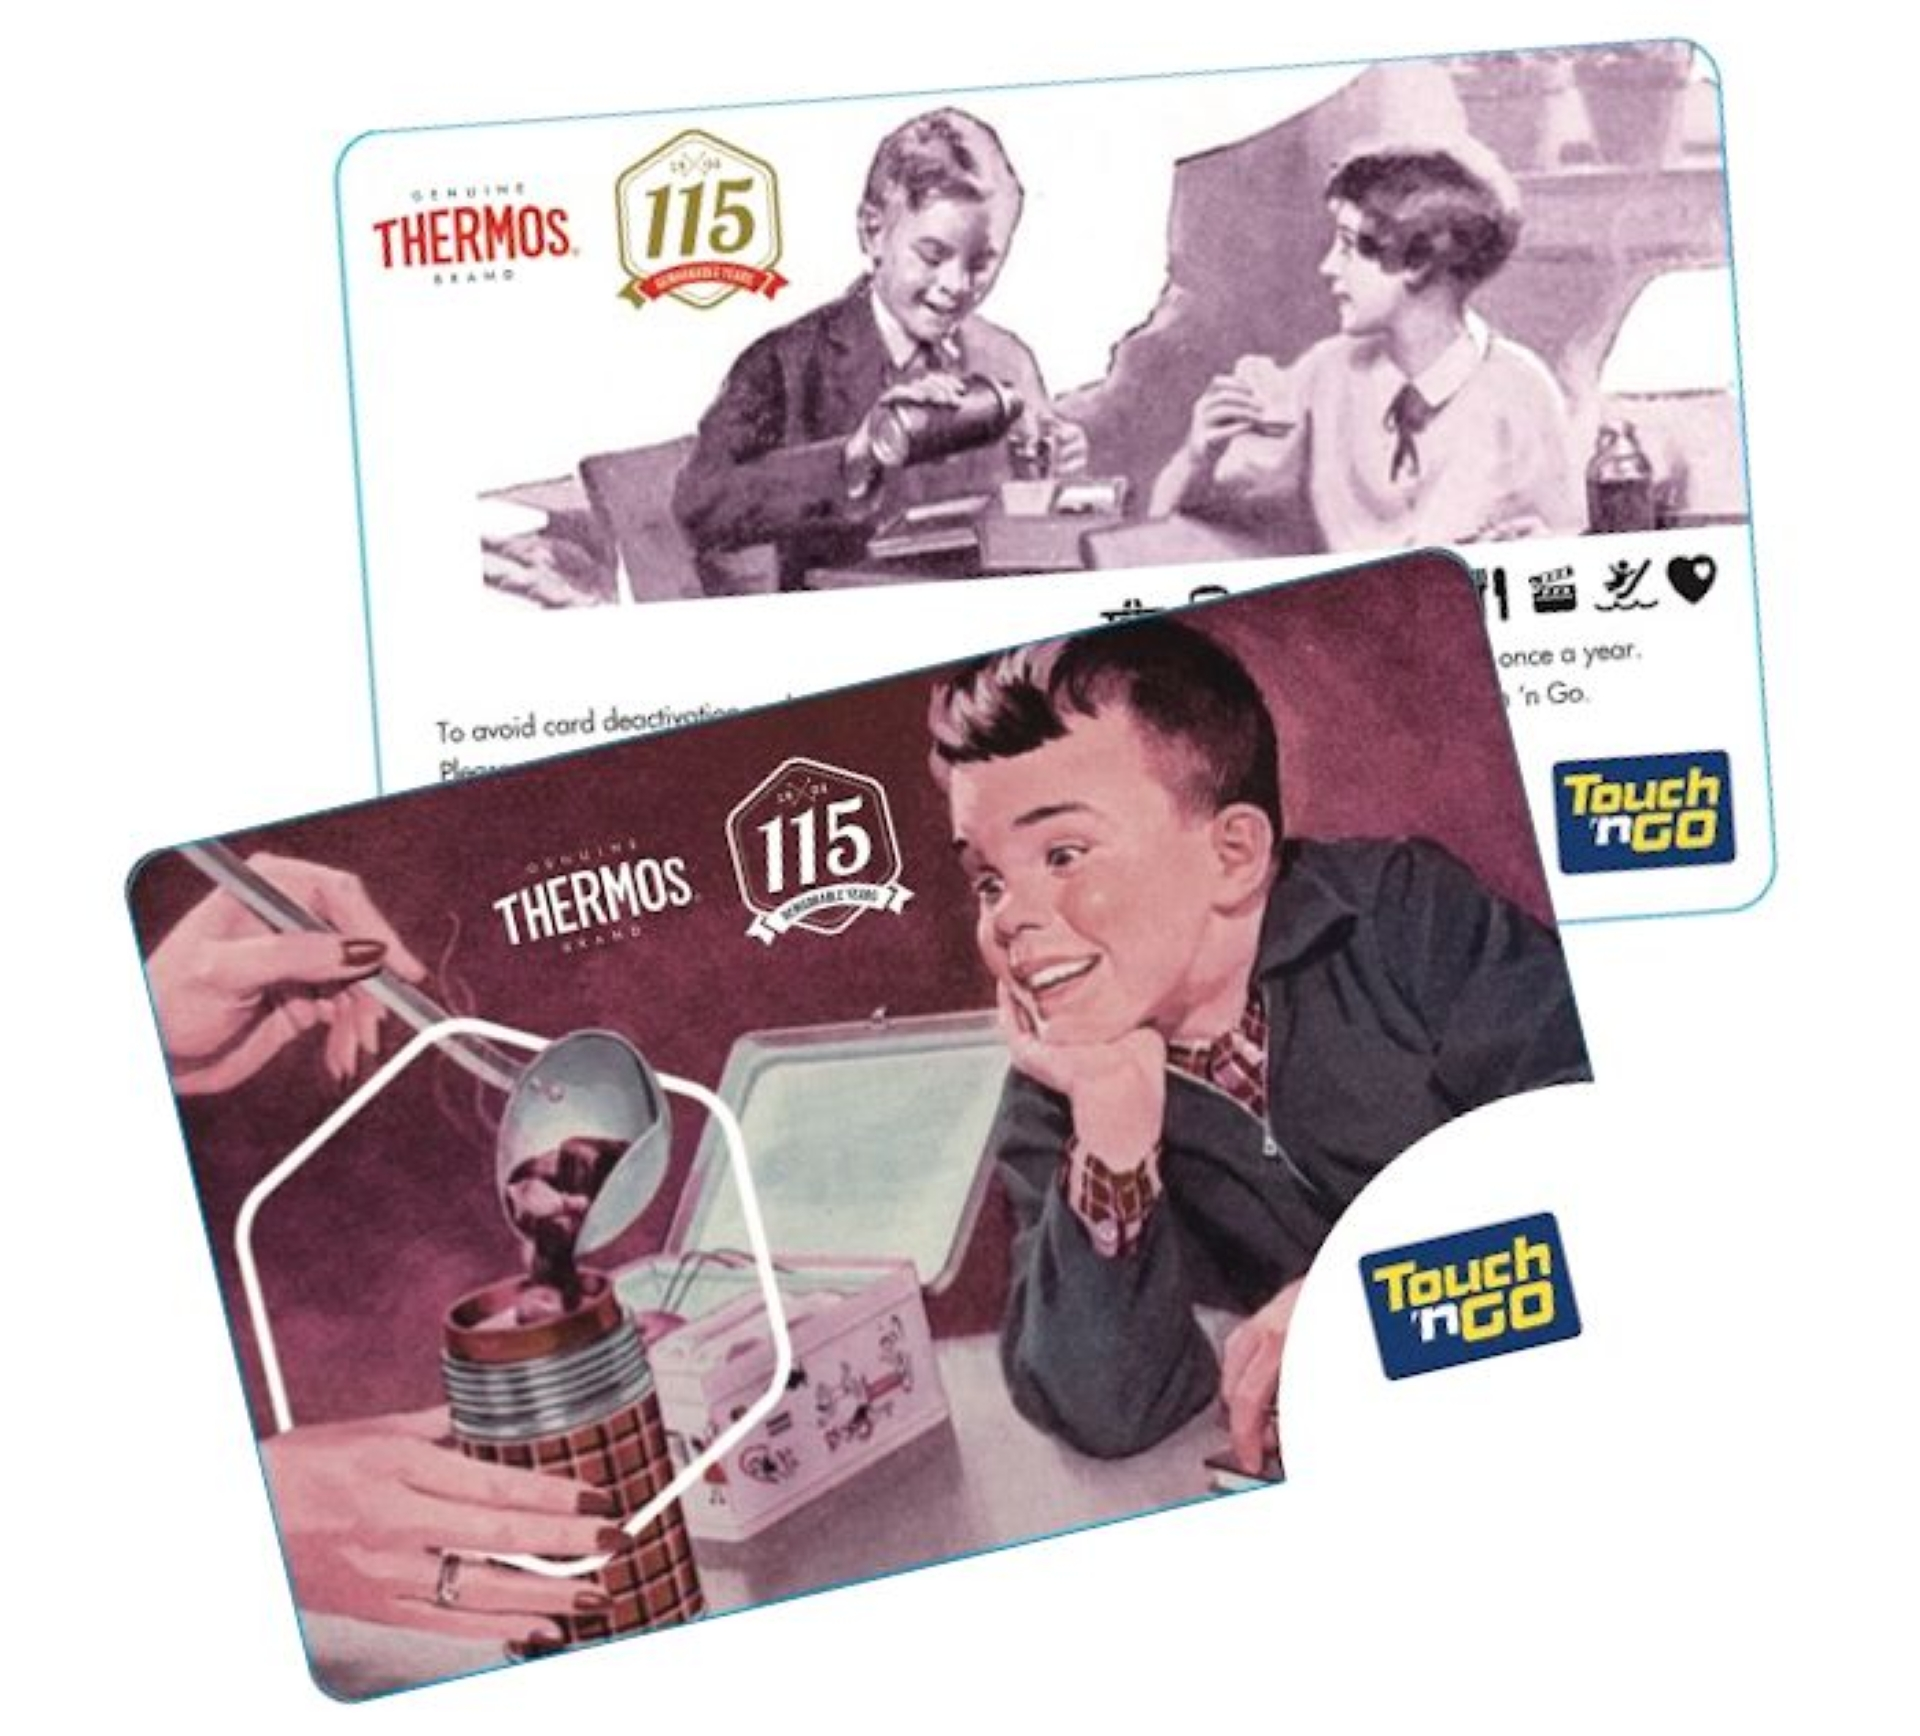 Special Touch n' Go card from Thermos as the brand celebrates its 115th anniversary.